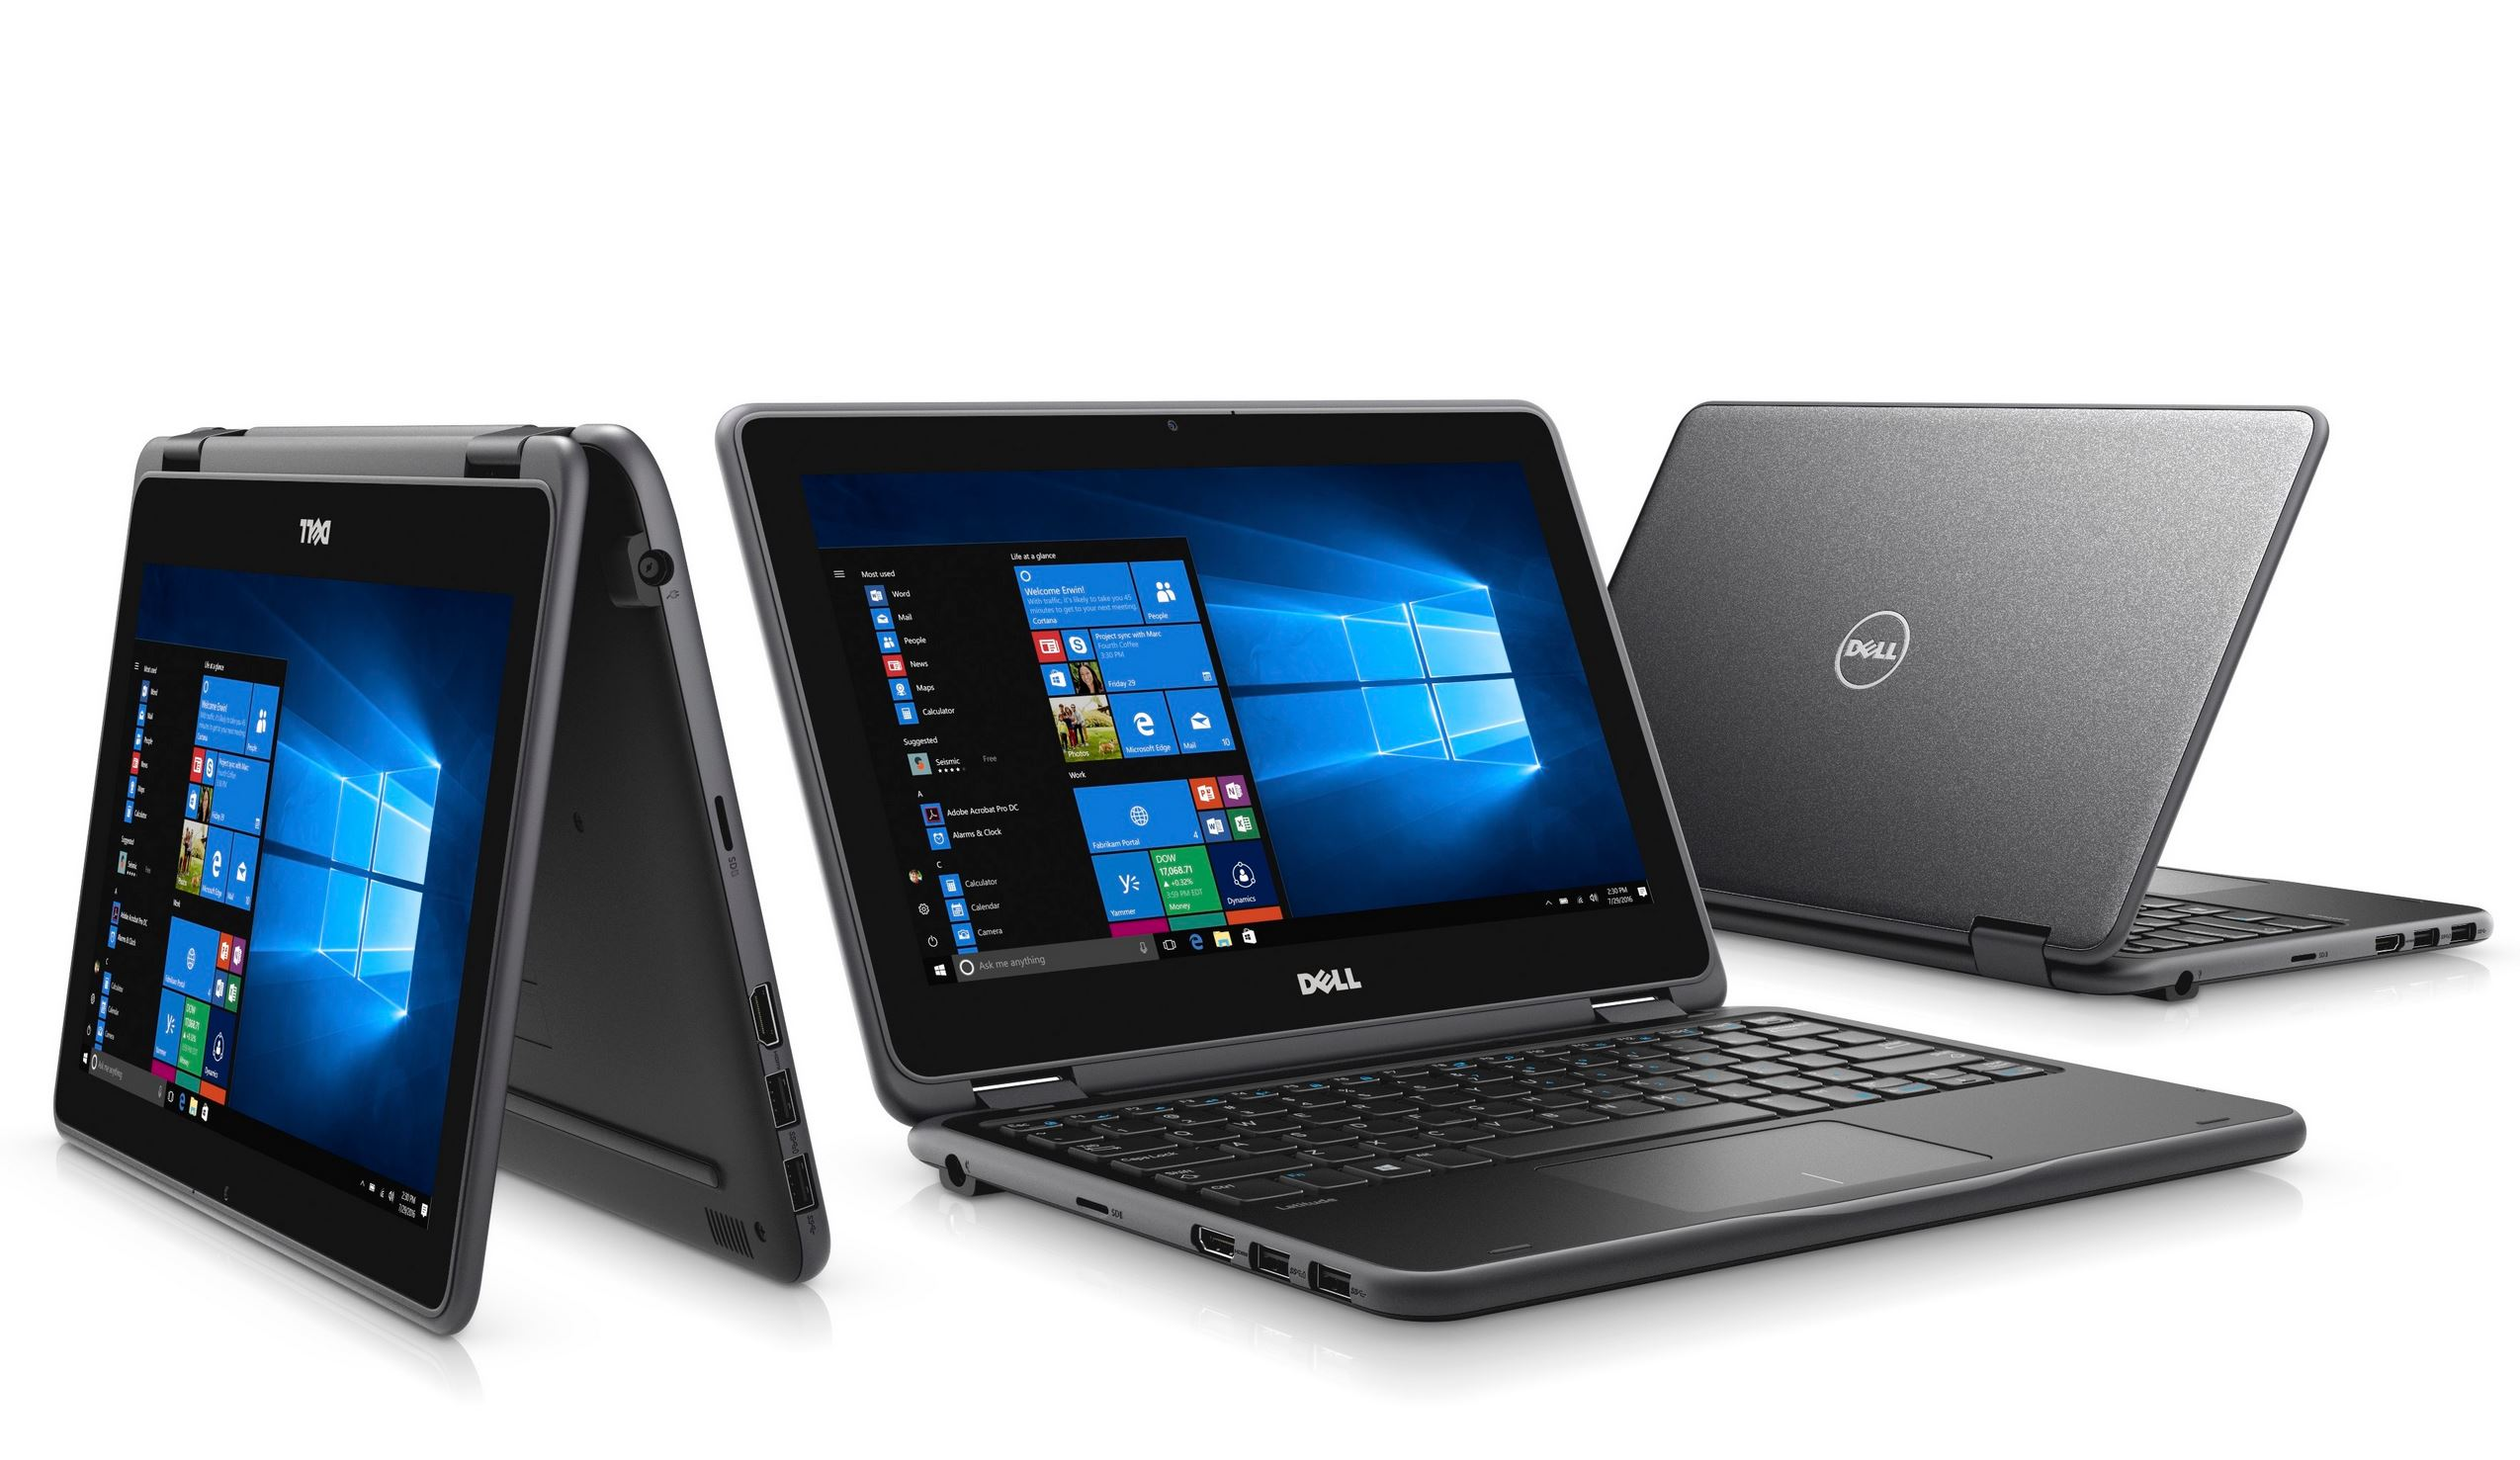 Dell announces new Latitude 11 convertible and Latitude 13 laptop for students 1